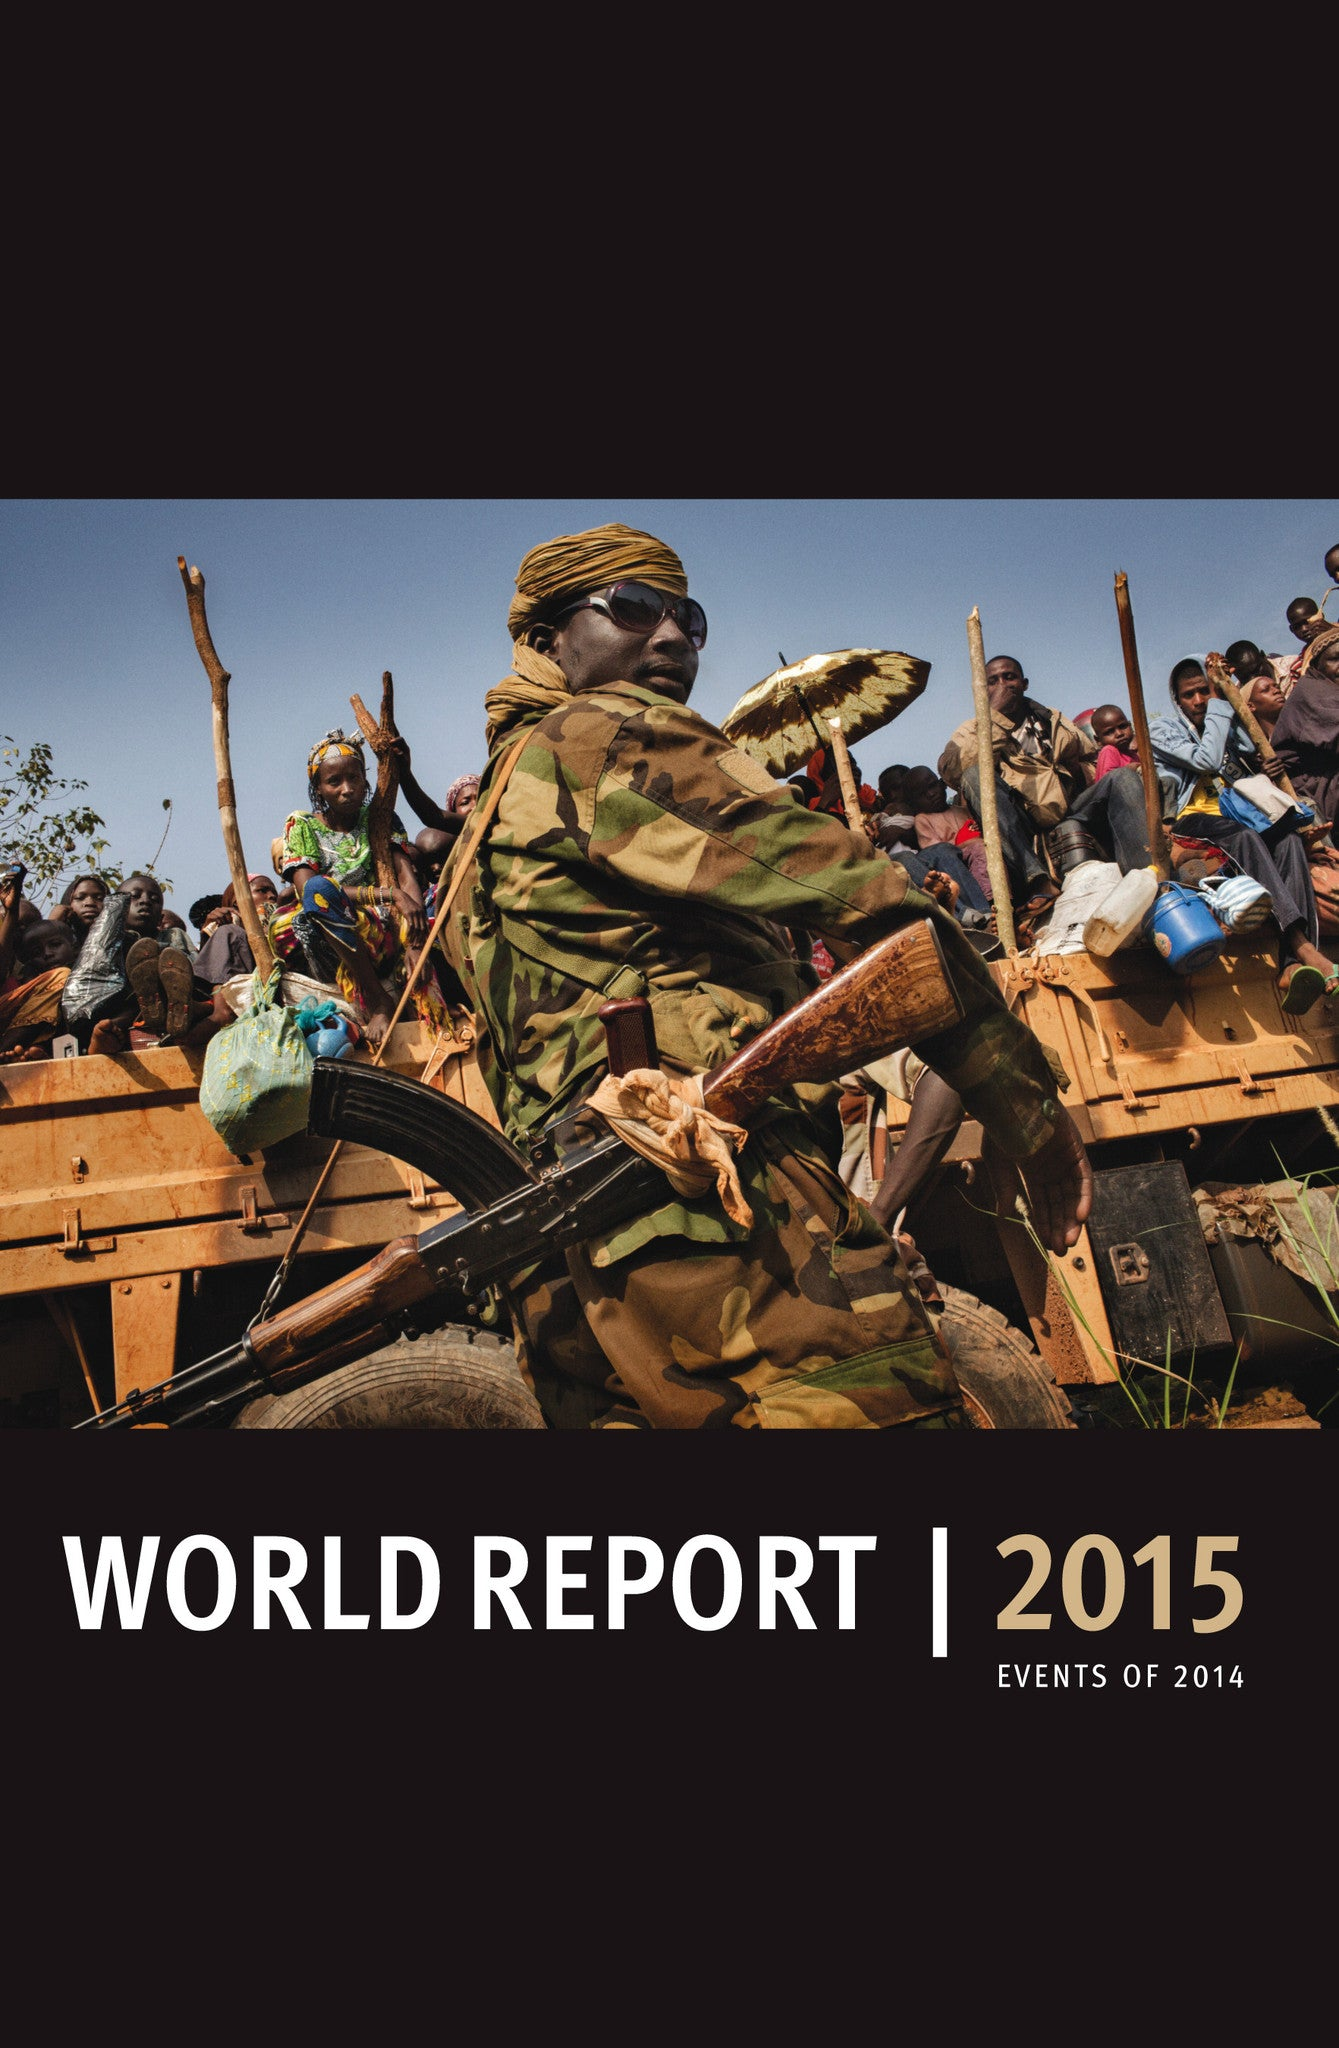 World Report 2015: Events of 2014